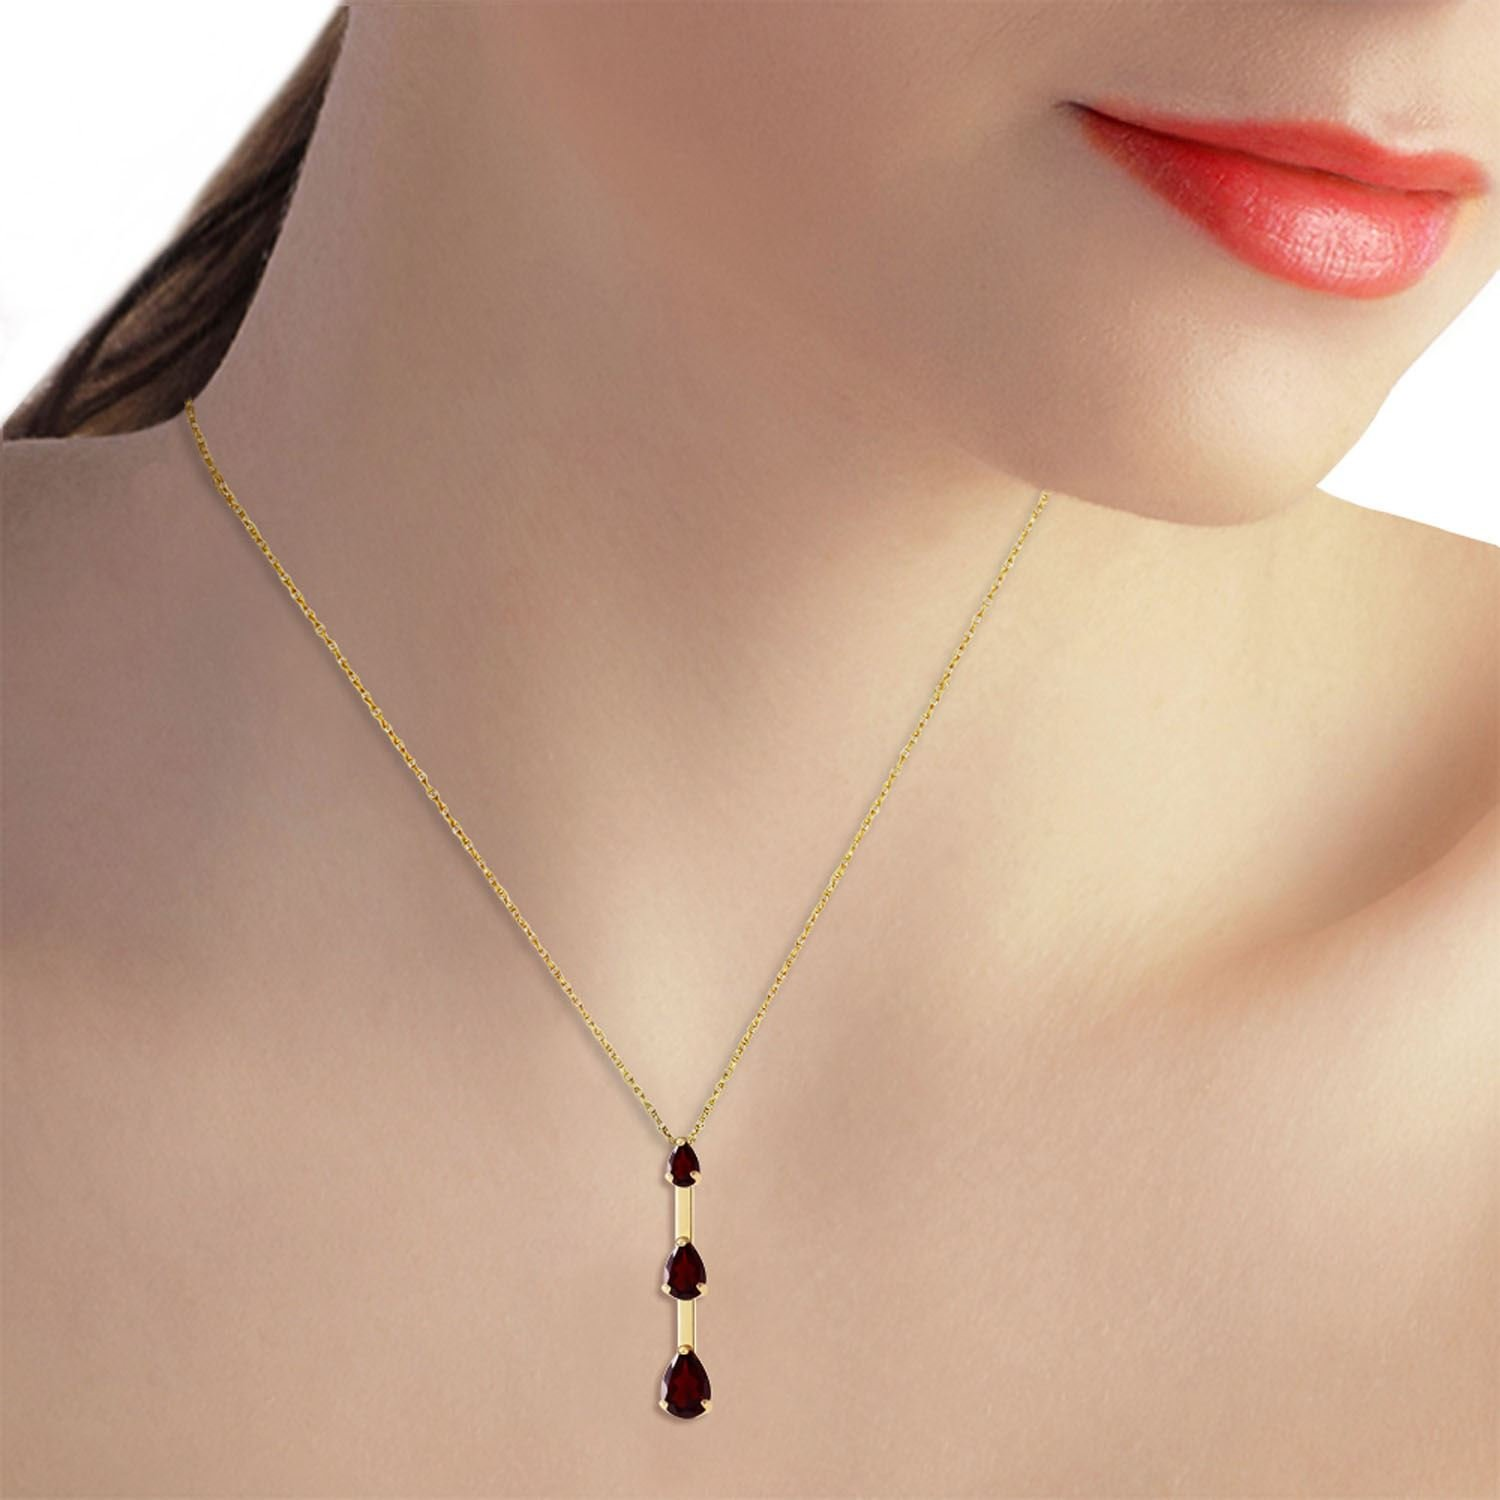 ALARRI 1.71 Carat 14K Solid Gold Necklace Natural Garnet with 18 Inch Chain Length